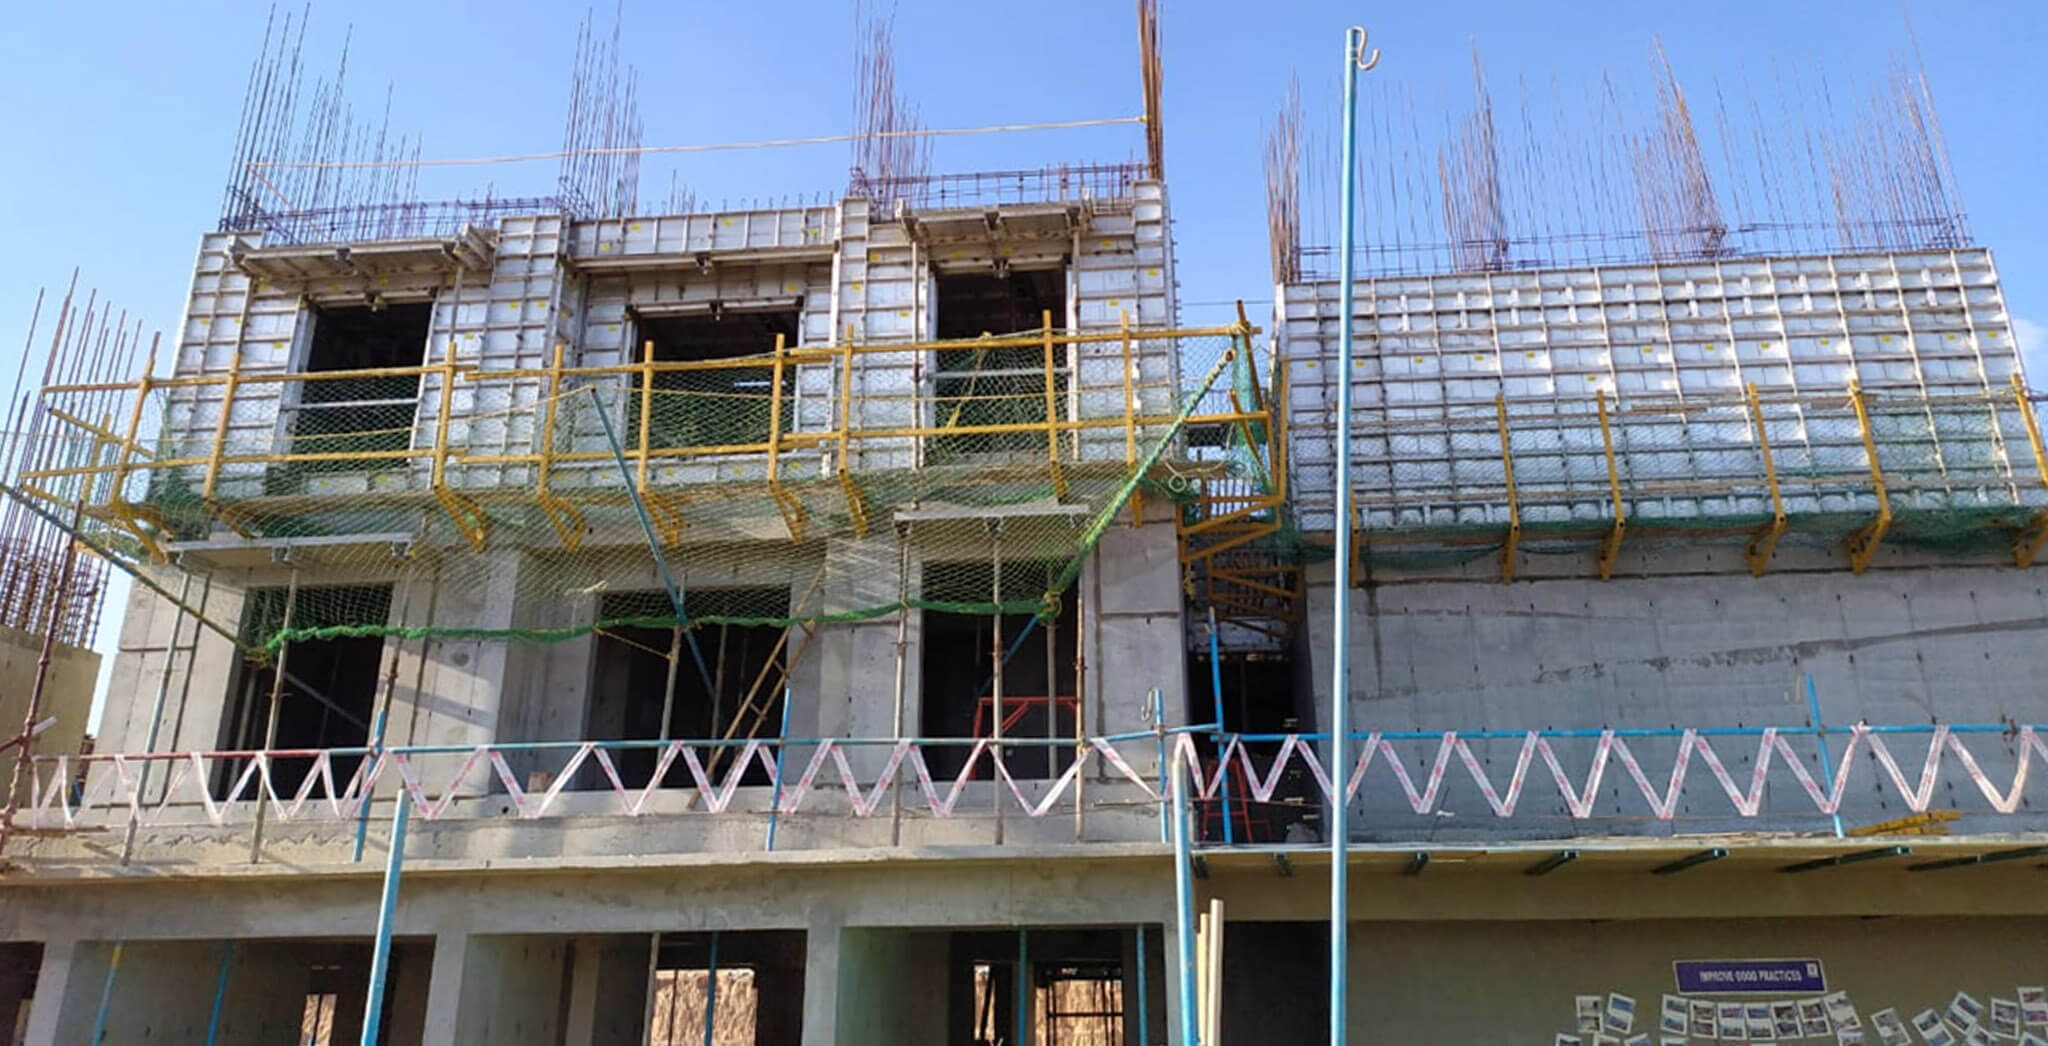 Apr 2020 - Gallium Block: Ground floor 3 units concreting completed and first floor units are in progress